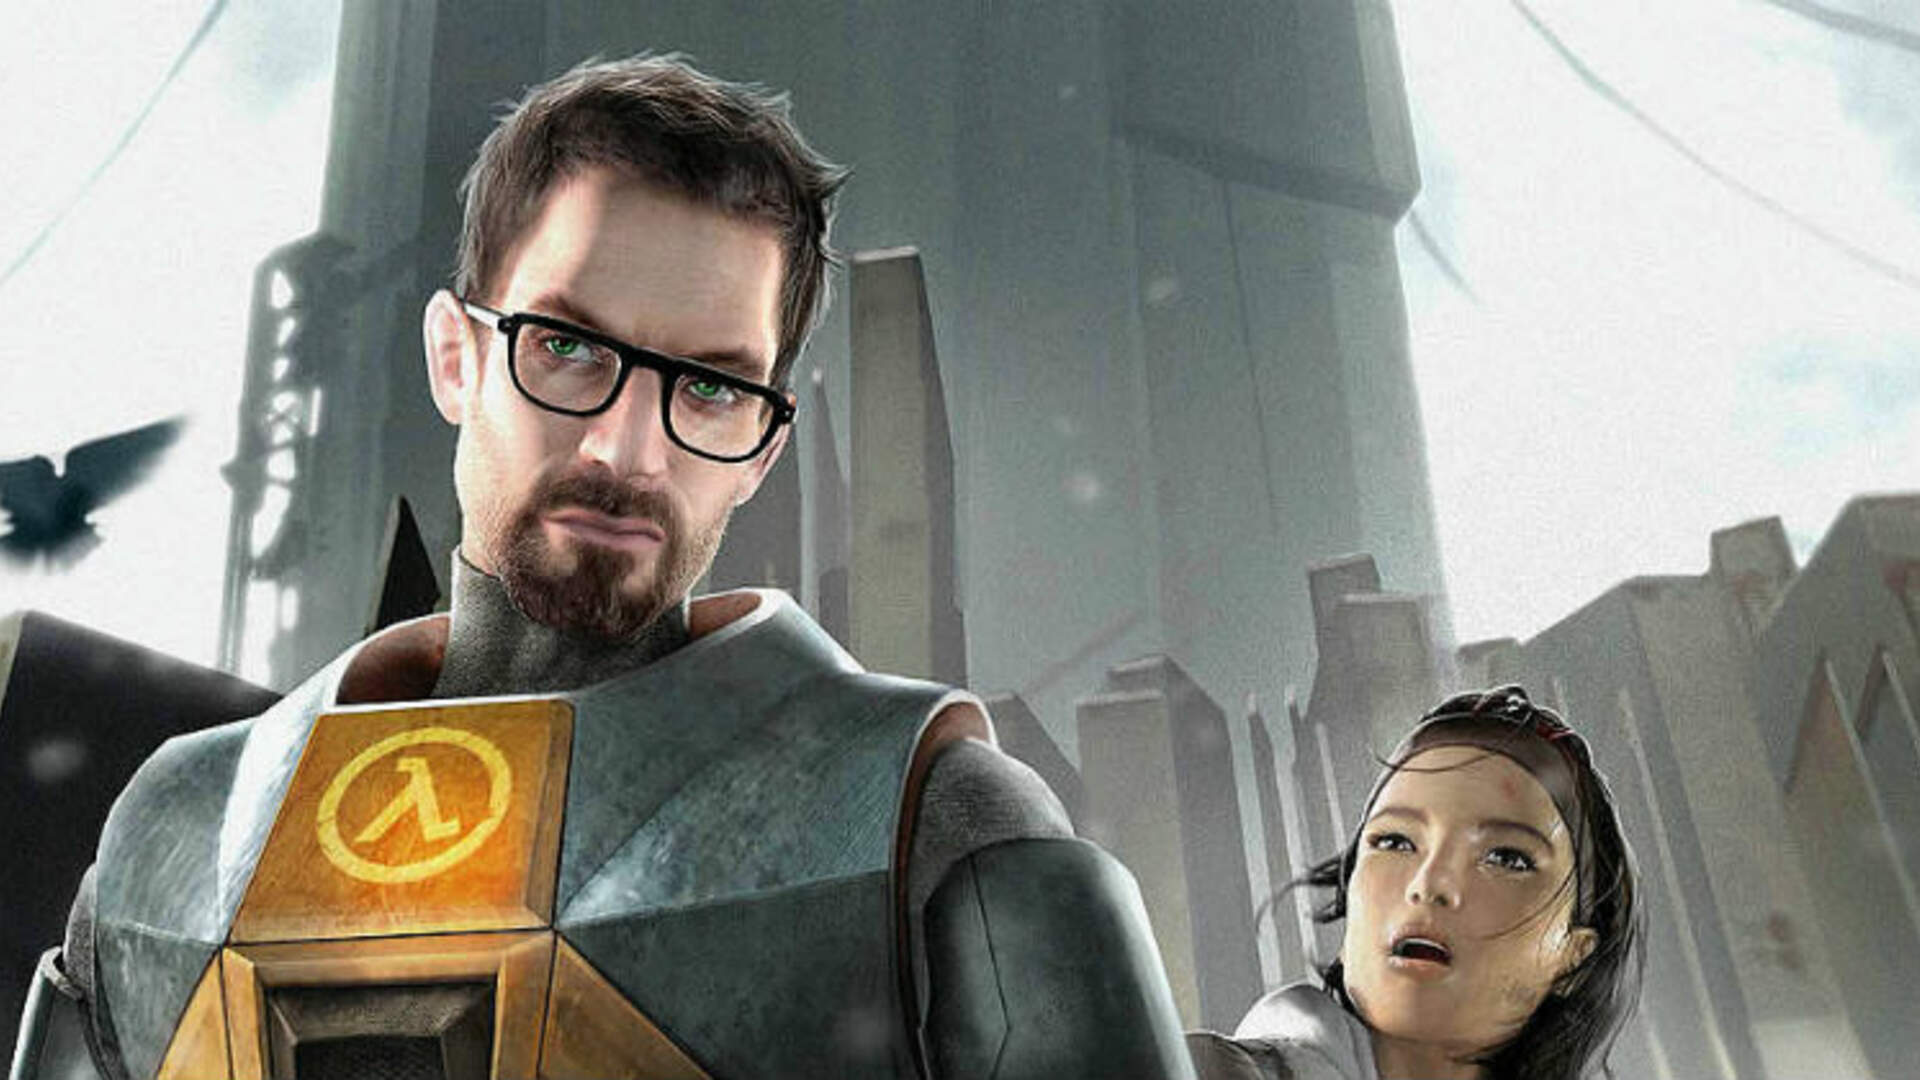 A Half-Life Costume is Coming to Final Fantasy XV Windows Edition Because Why the Hell Not